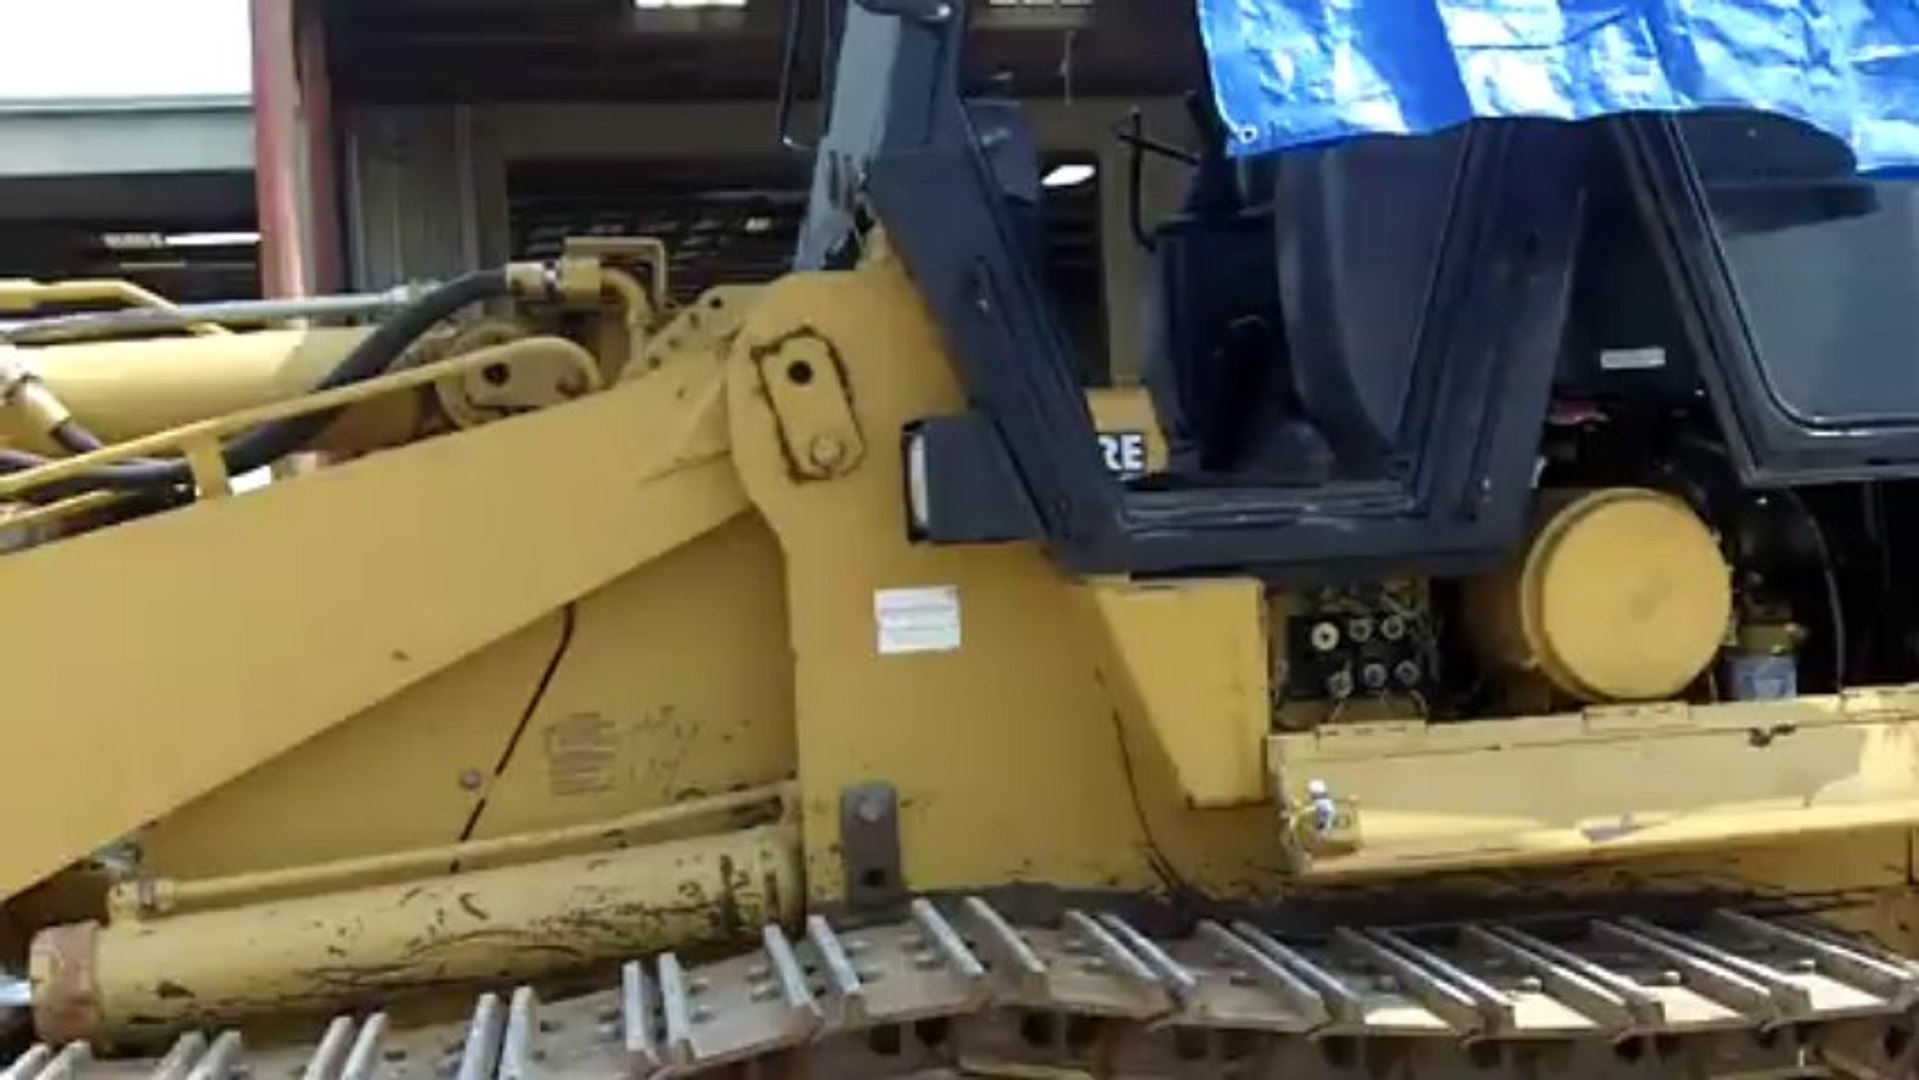 Preventive Maintenance Work on Caterpillar 963 Track Loader